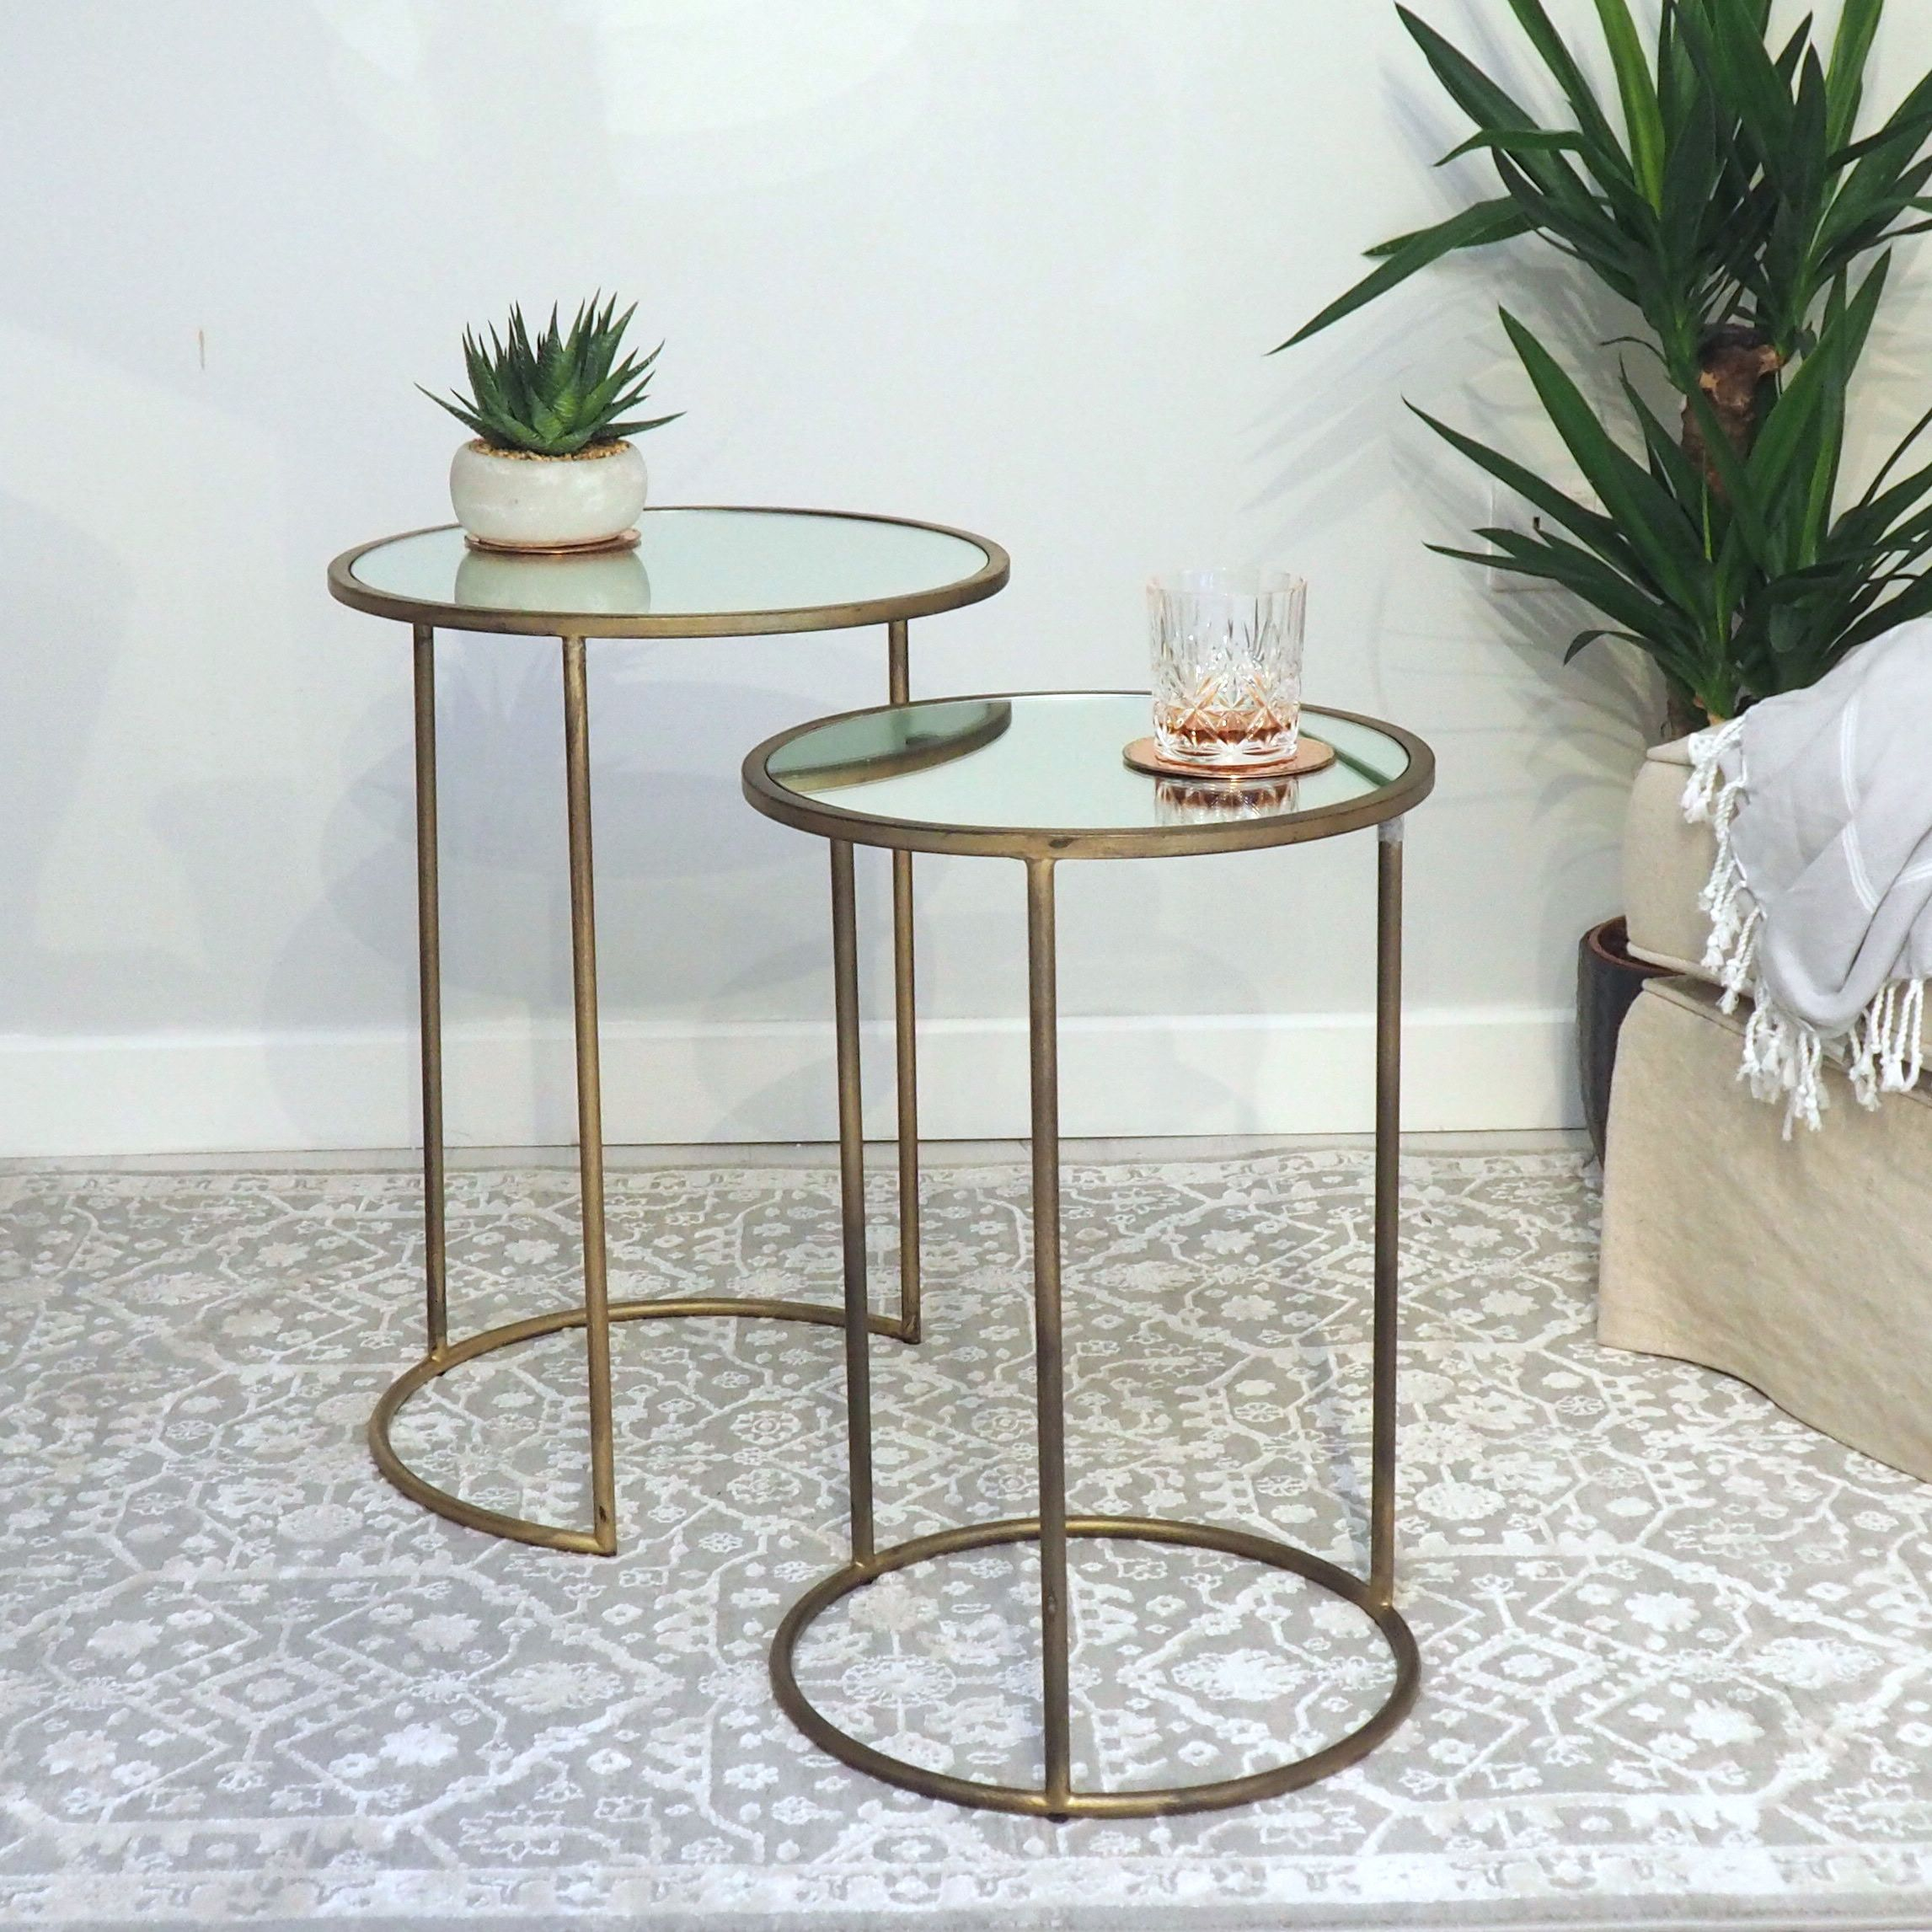 brass and glass nest of tables za za homes in 2020 on exclusive modern nesting end tables design ideas very functional furnishings id=55953